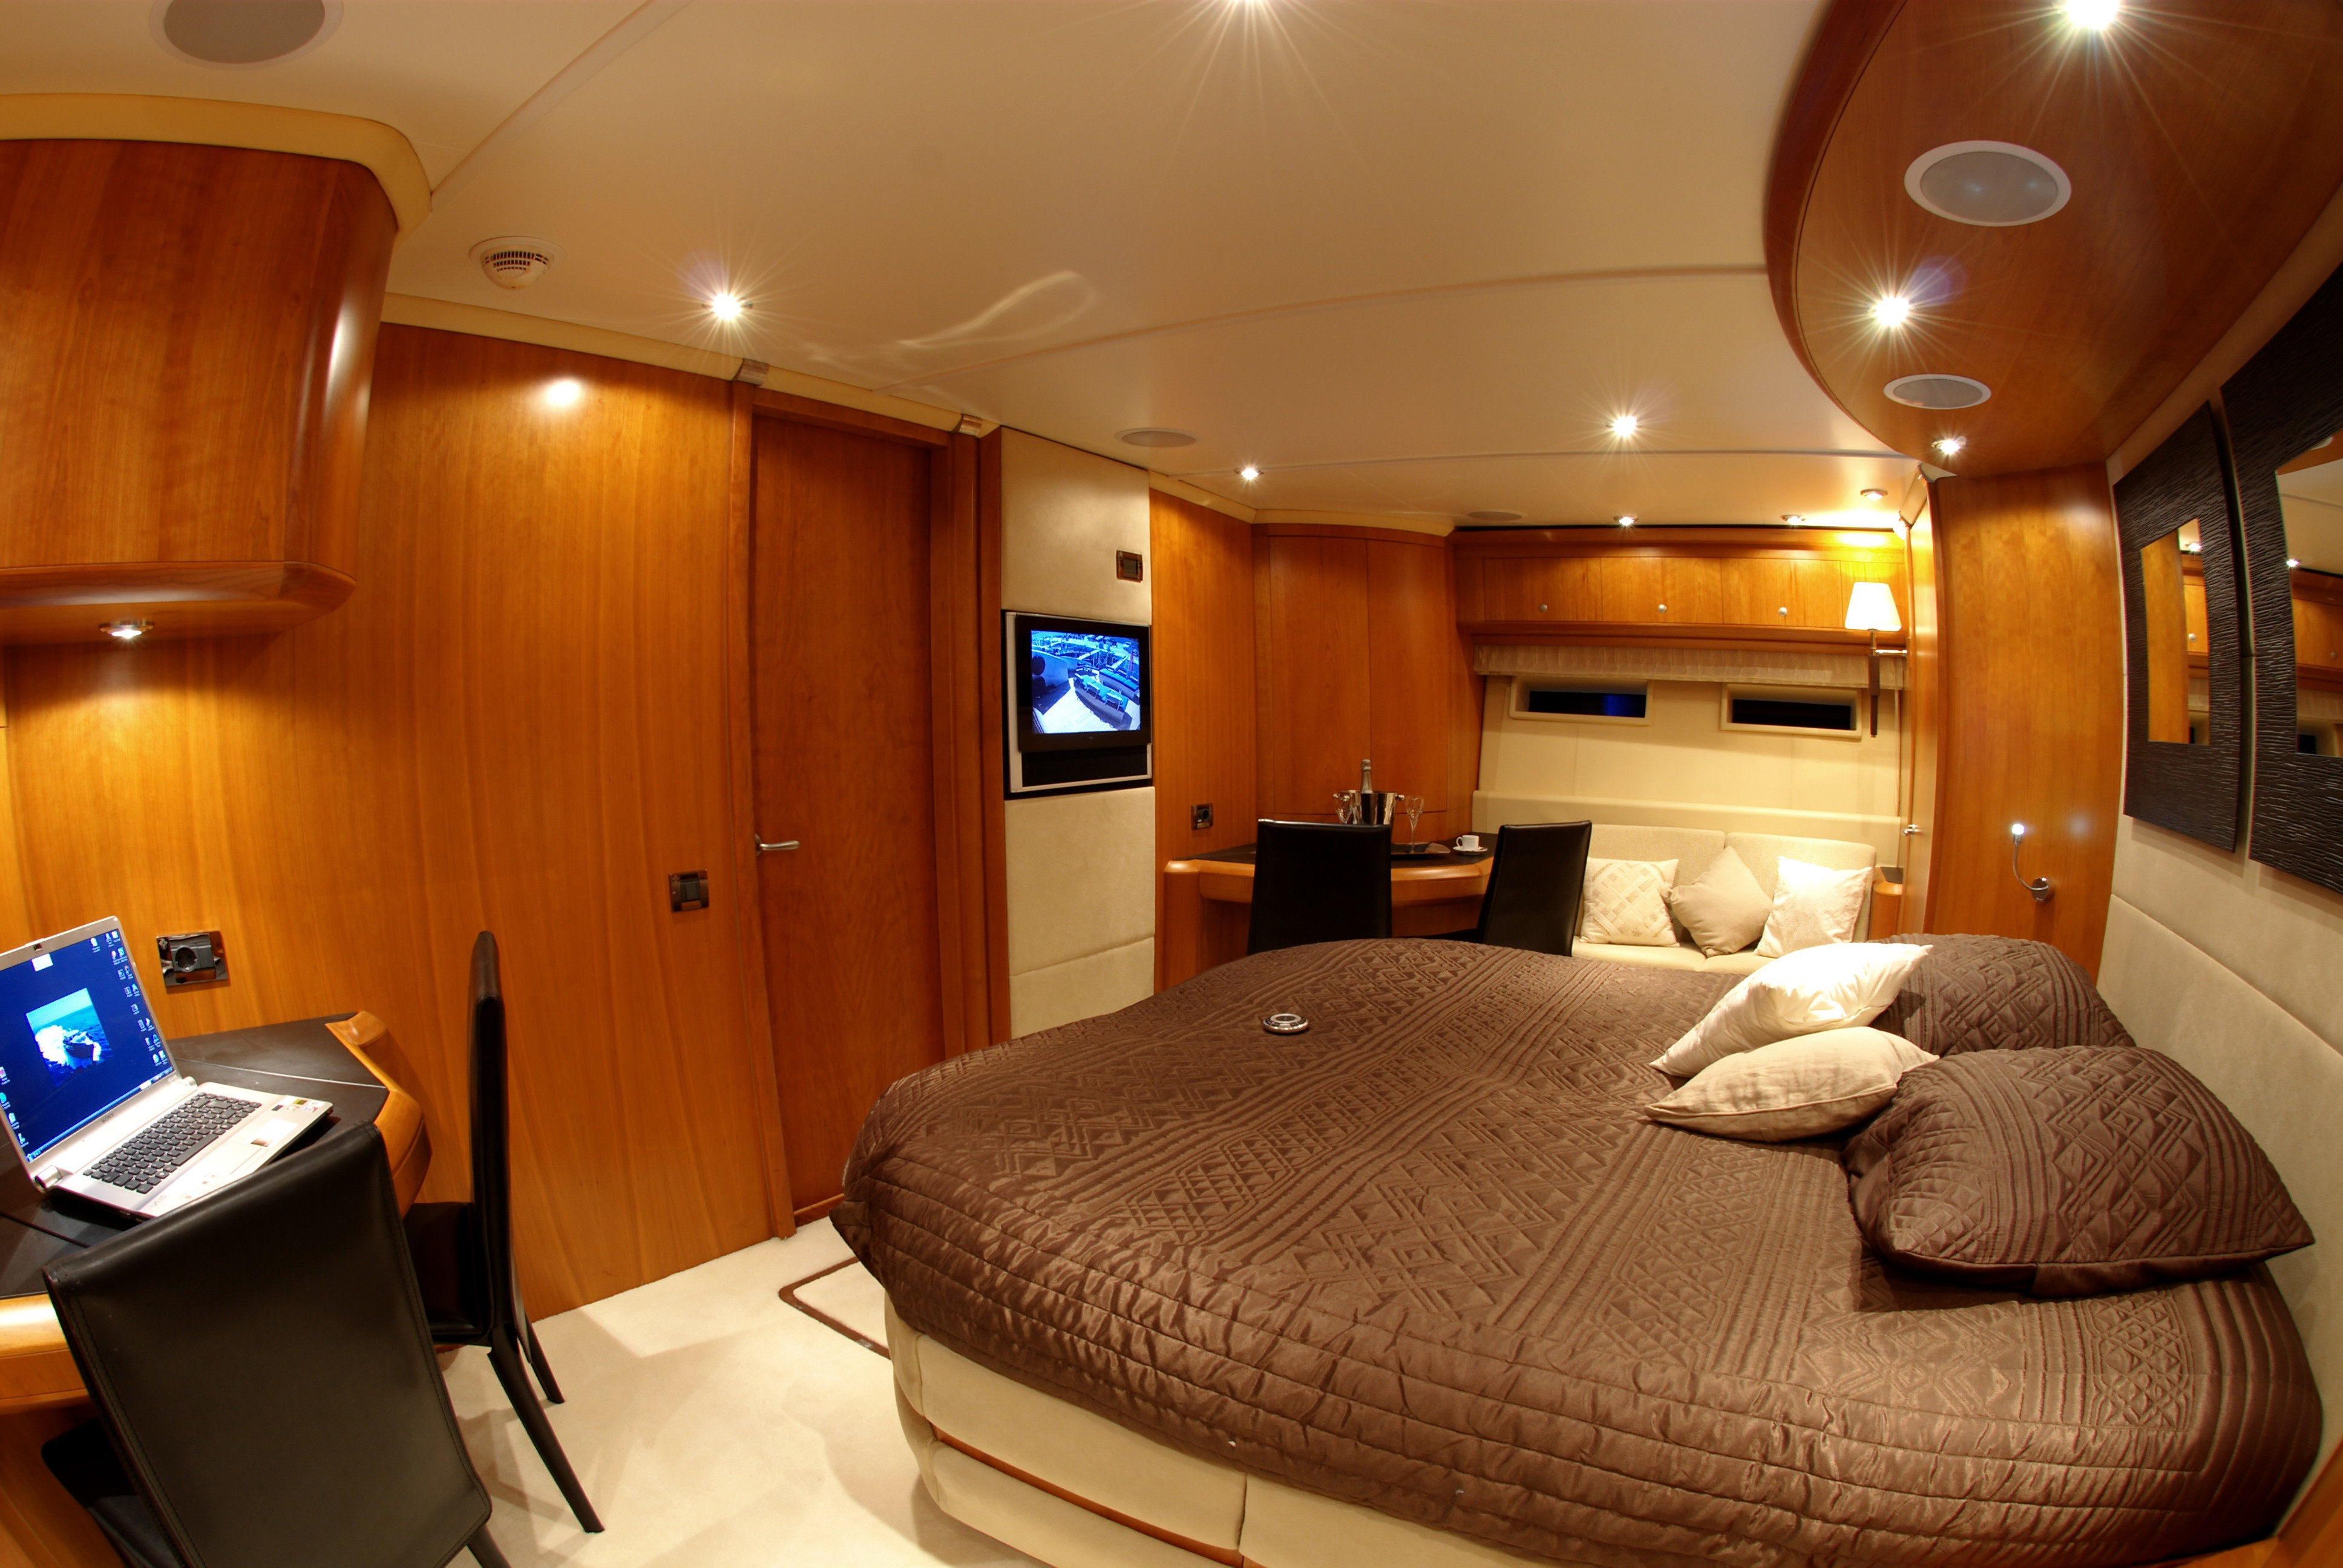 The 25m Yacht ORACLE II